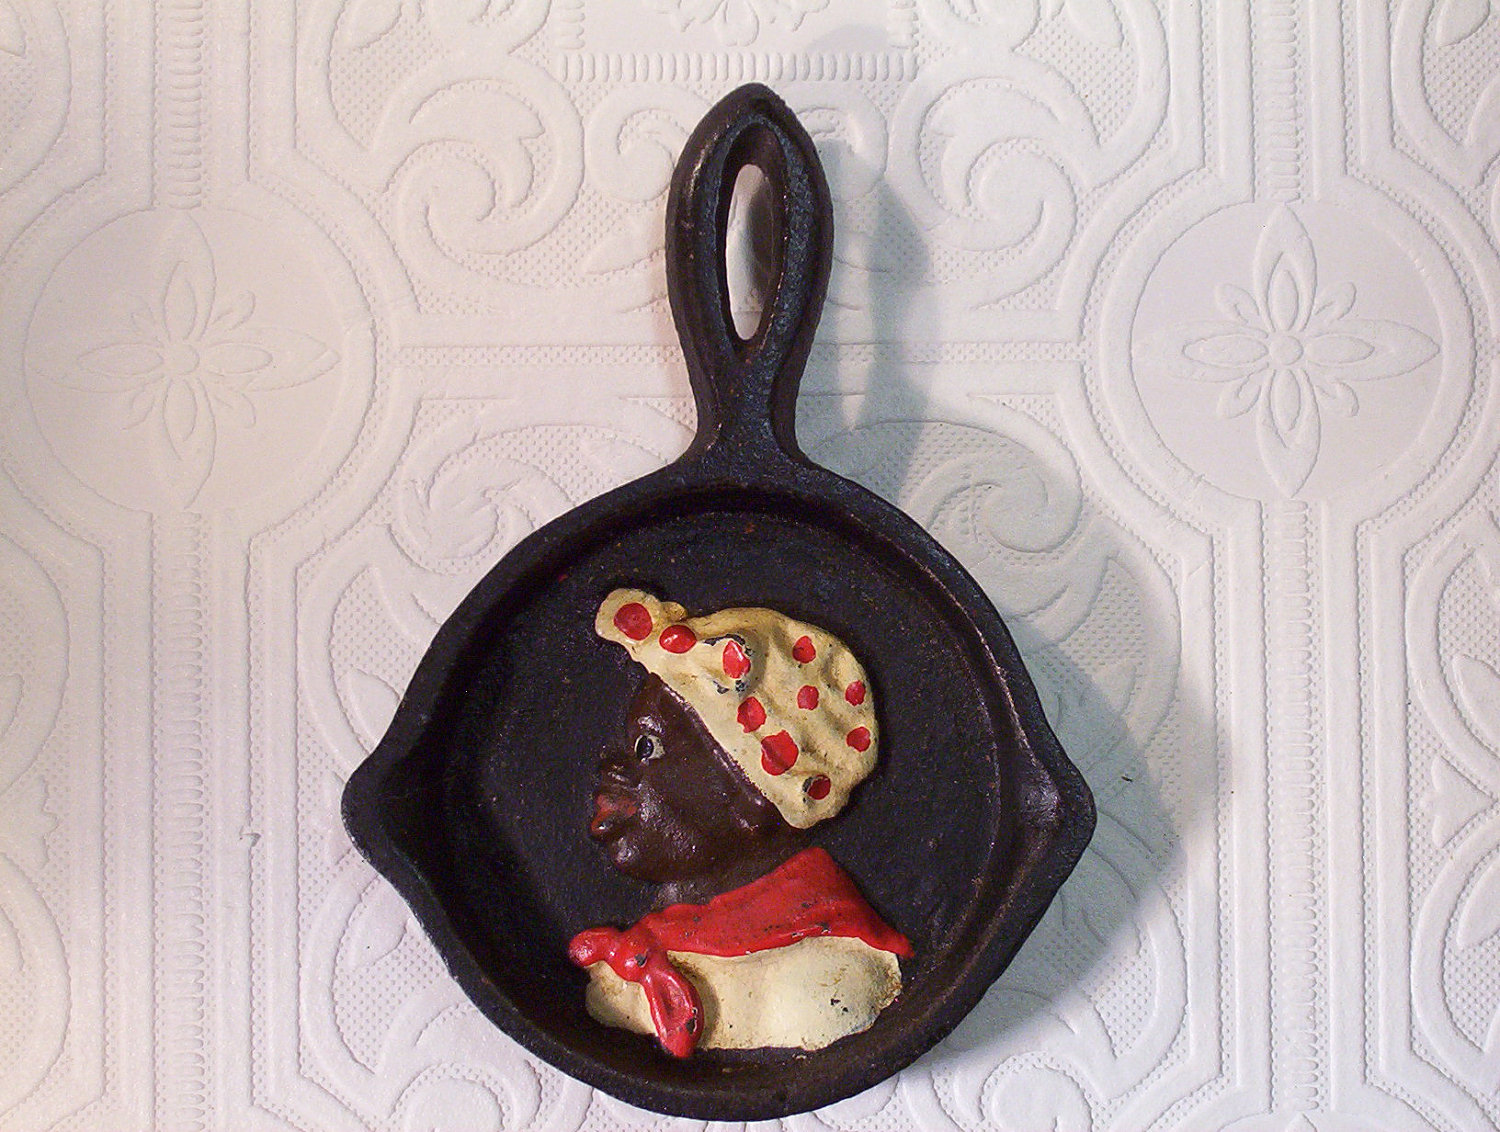 Souvenir Aunt Jemima Kitchen Decor (Image 7 of 10)